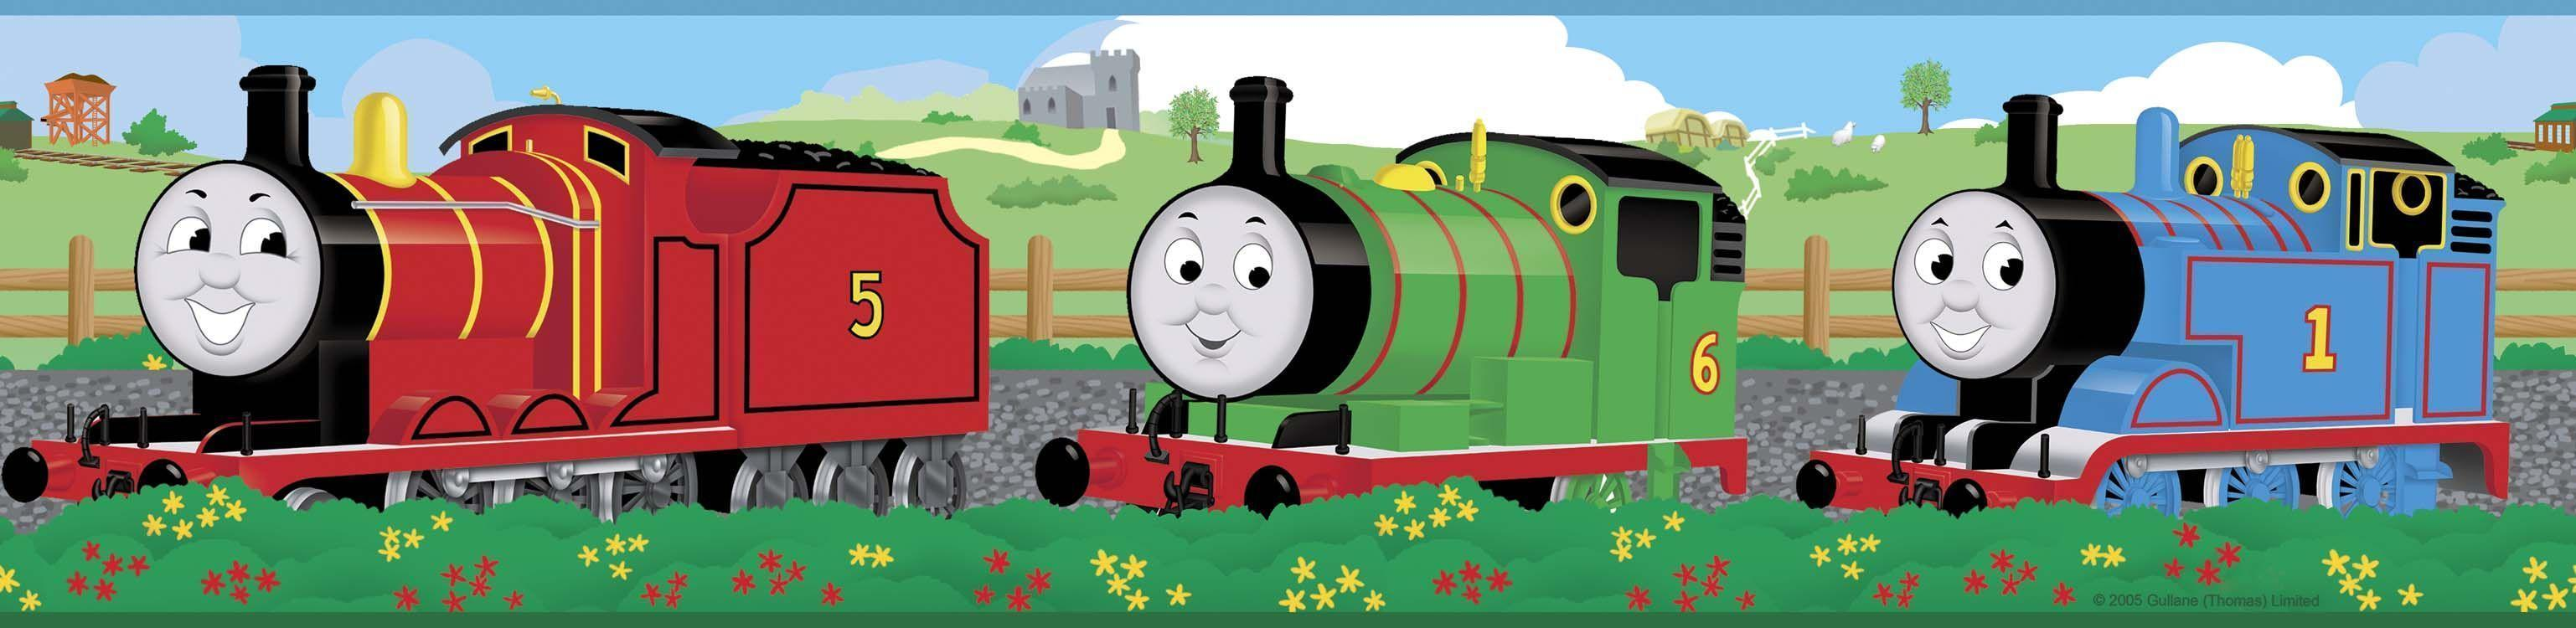 Thomas And Friends Wallpapers - Wallpaper Cave Thomas And Friends Wallpaper Border